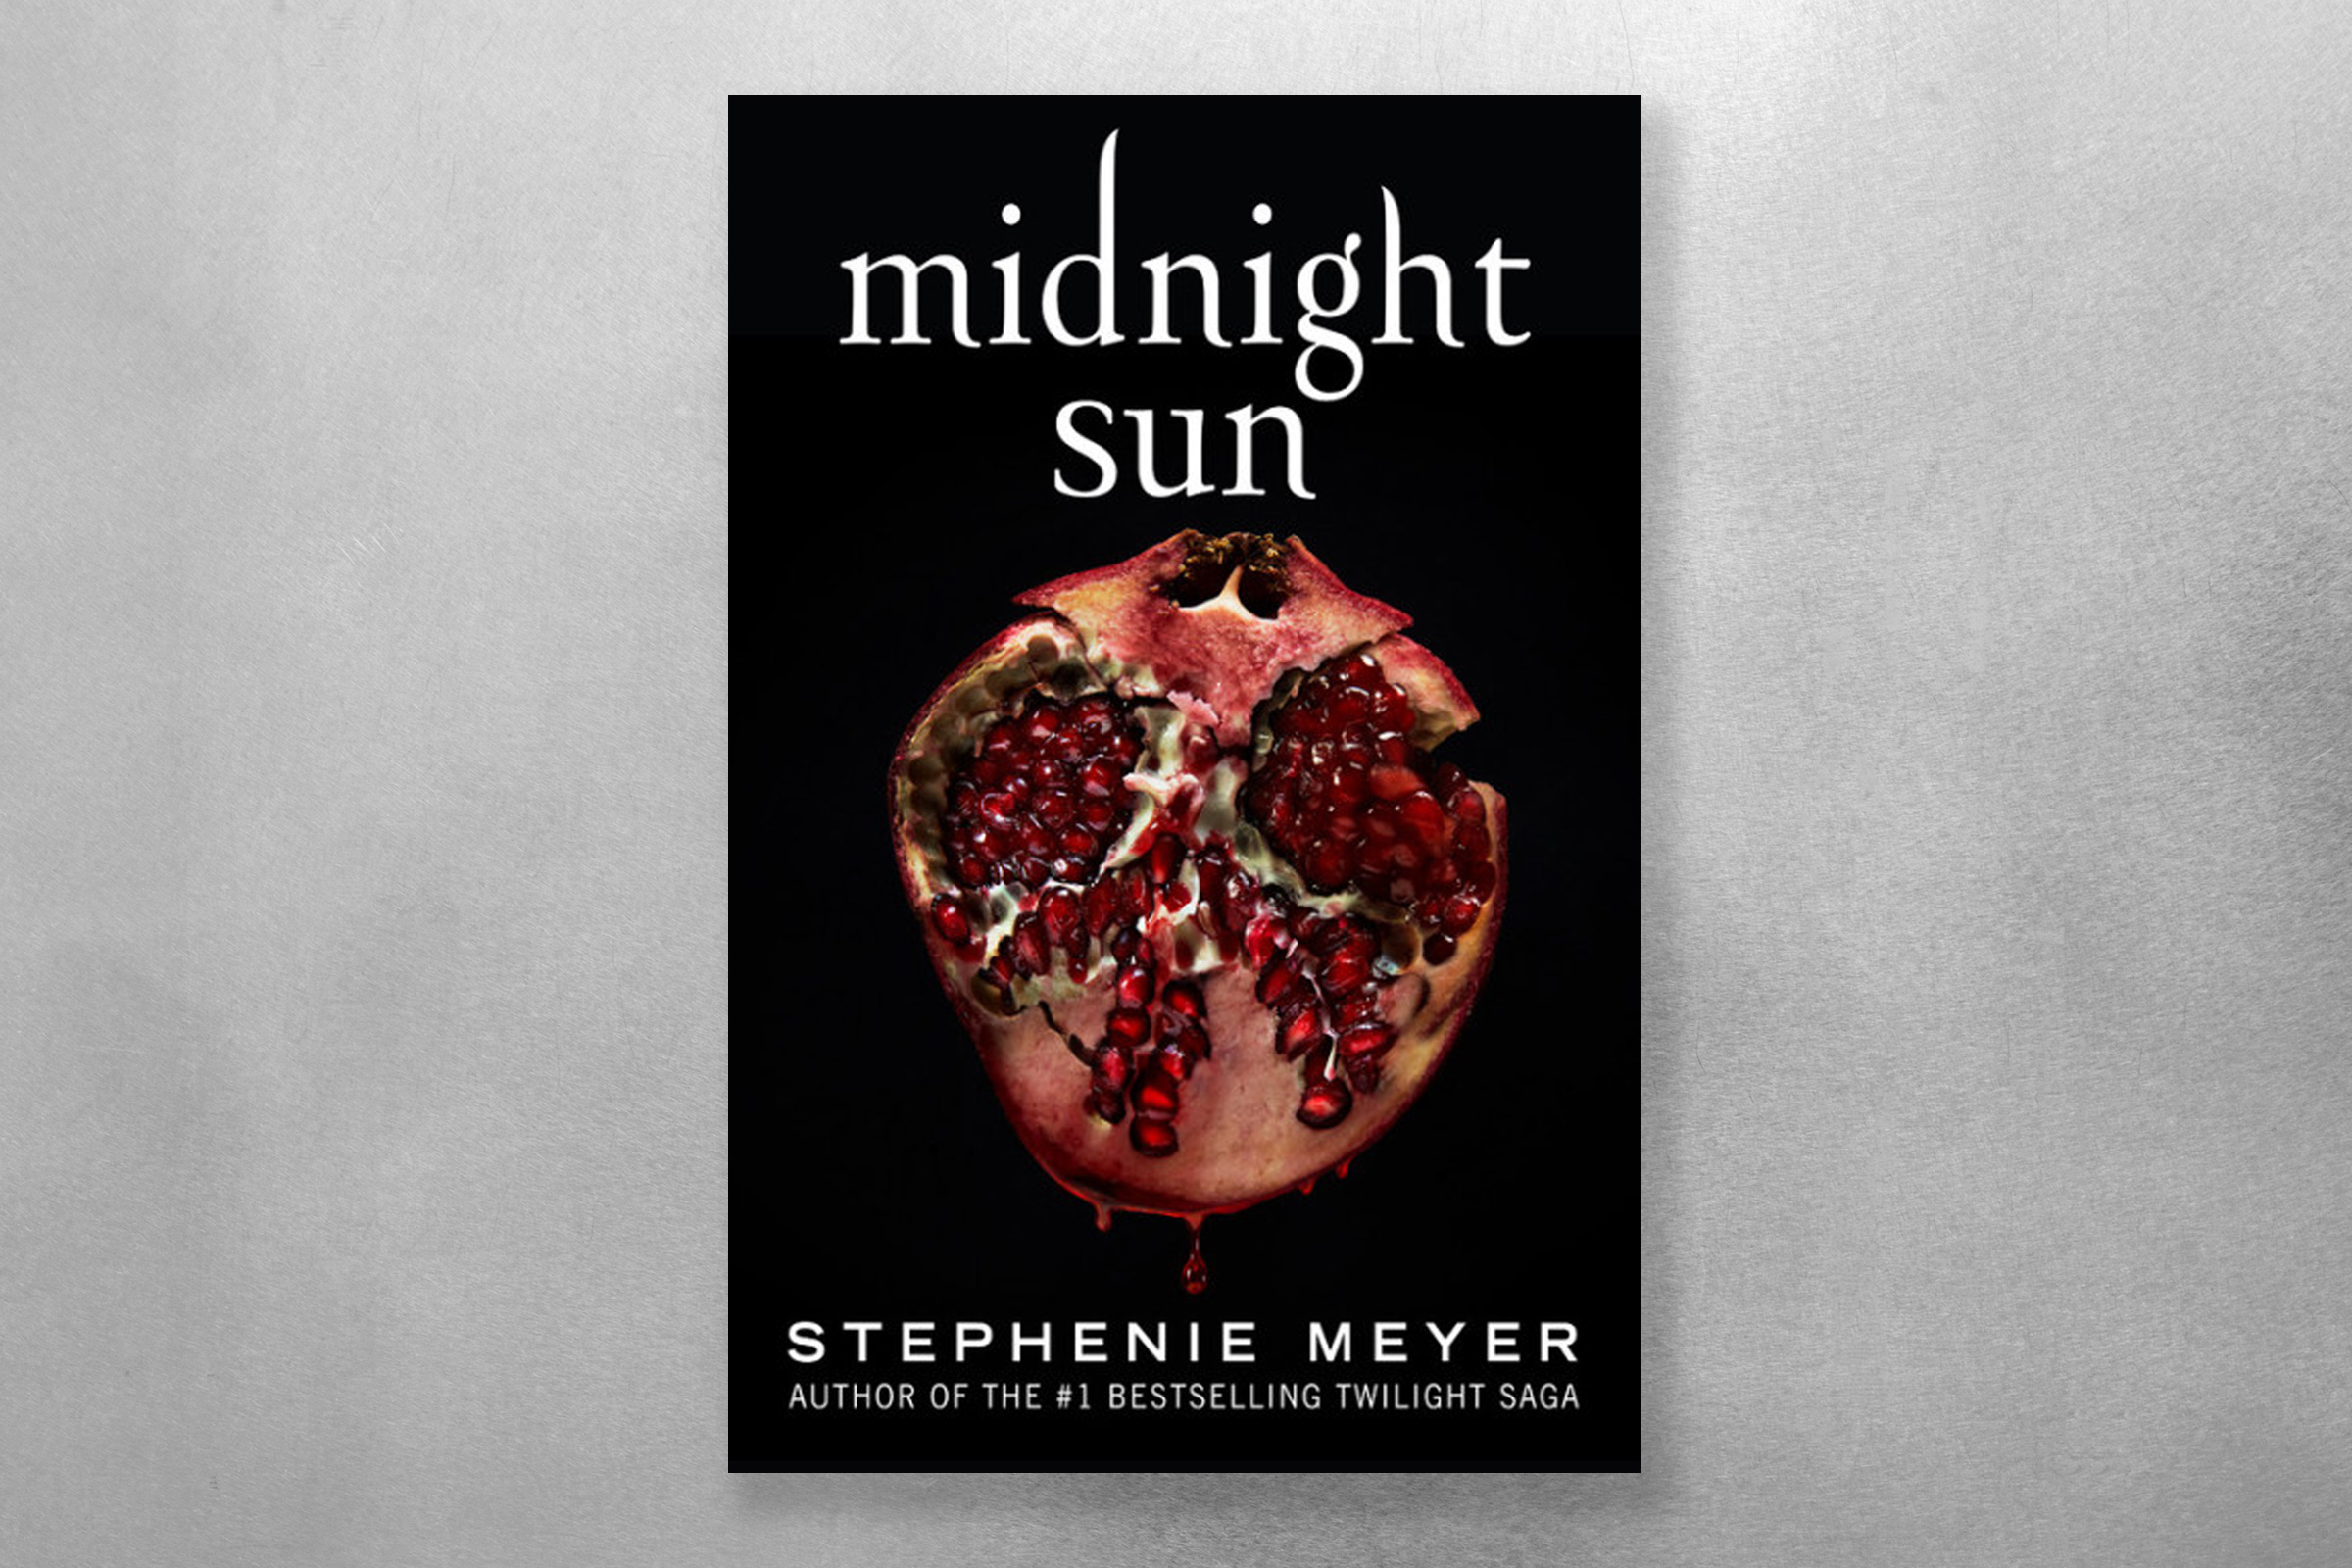 Of The Midnight Sun can not correct defects in Twilight. But it is a book much better